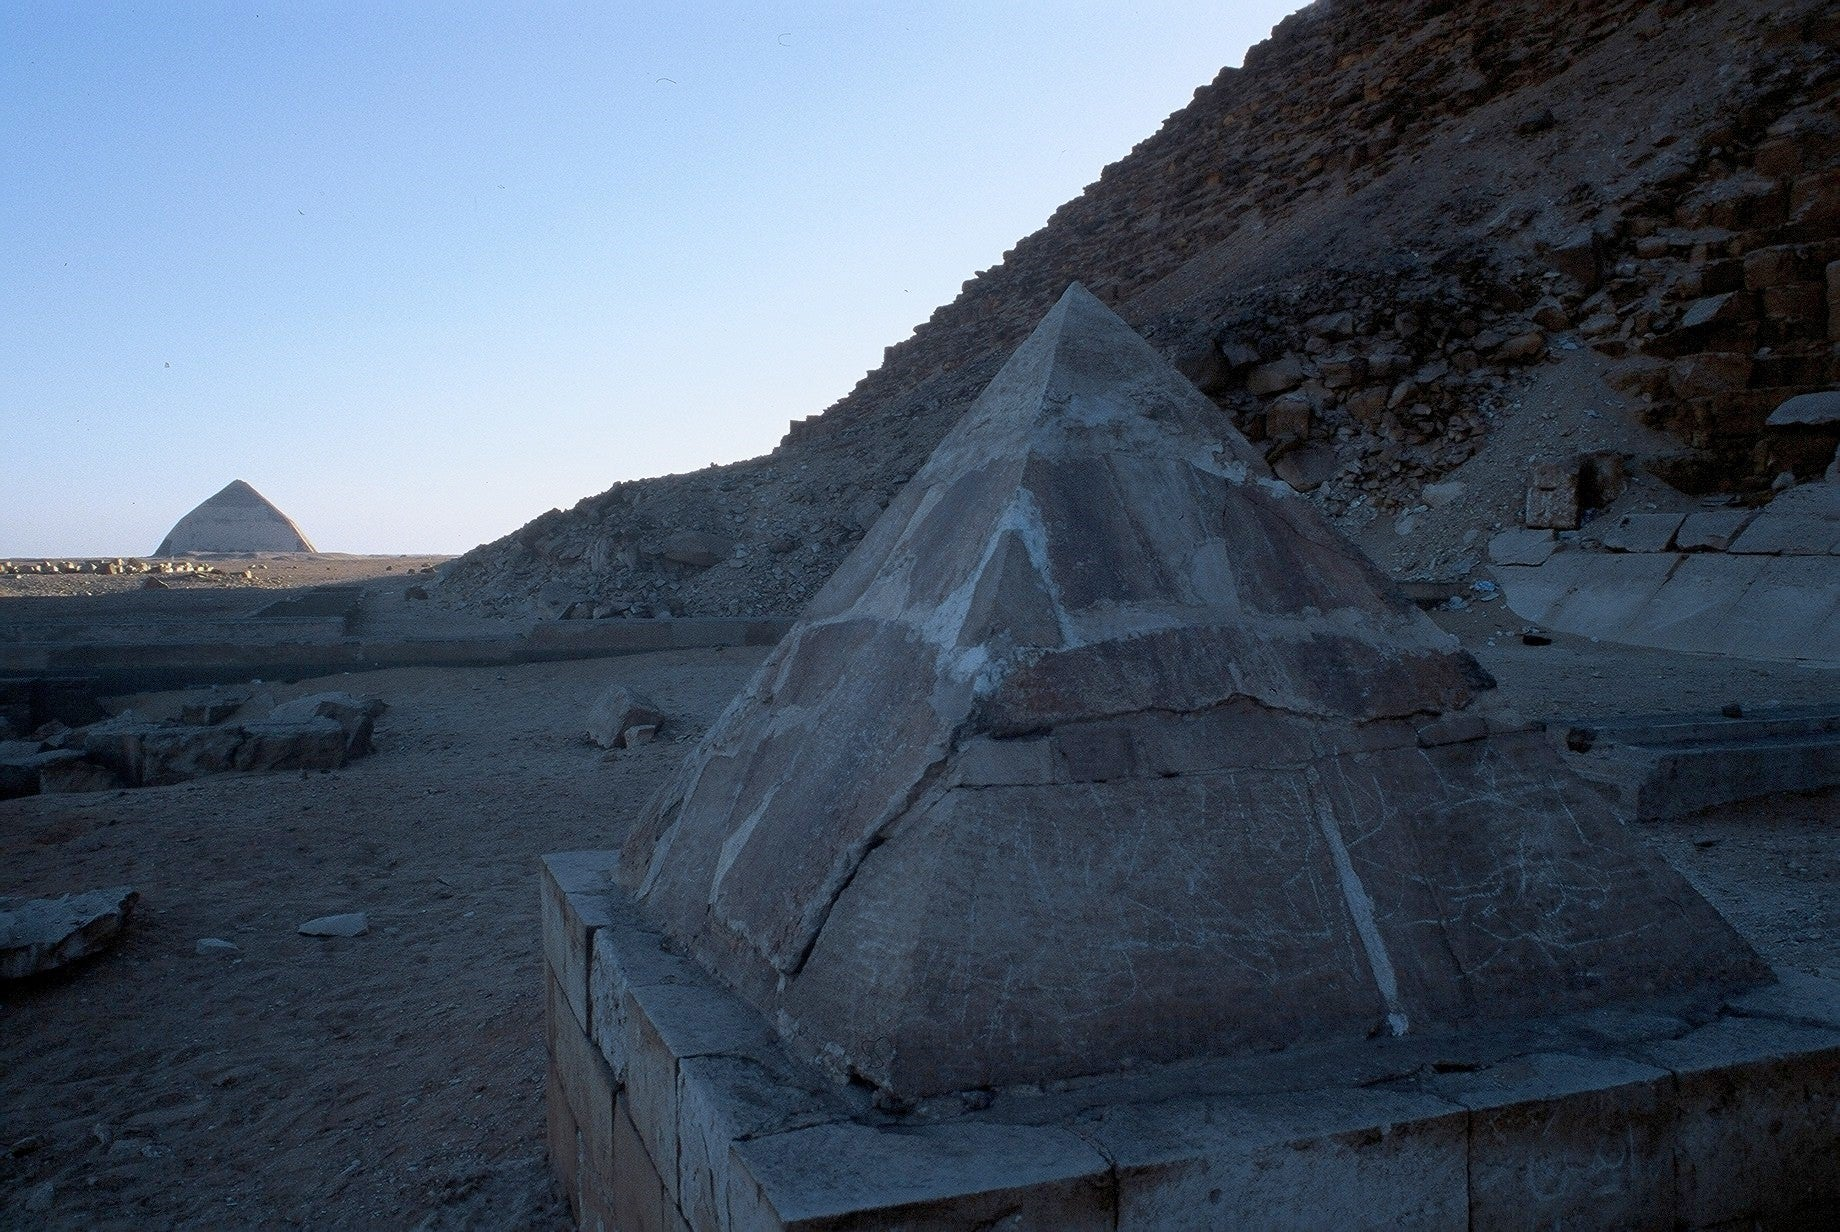 Red Pyramid of Dashur